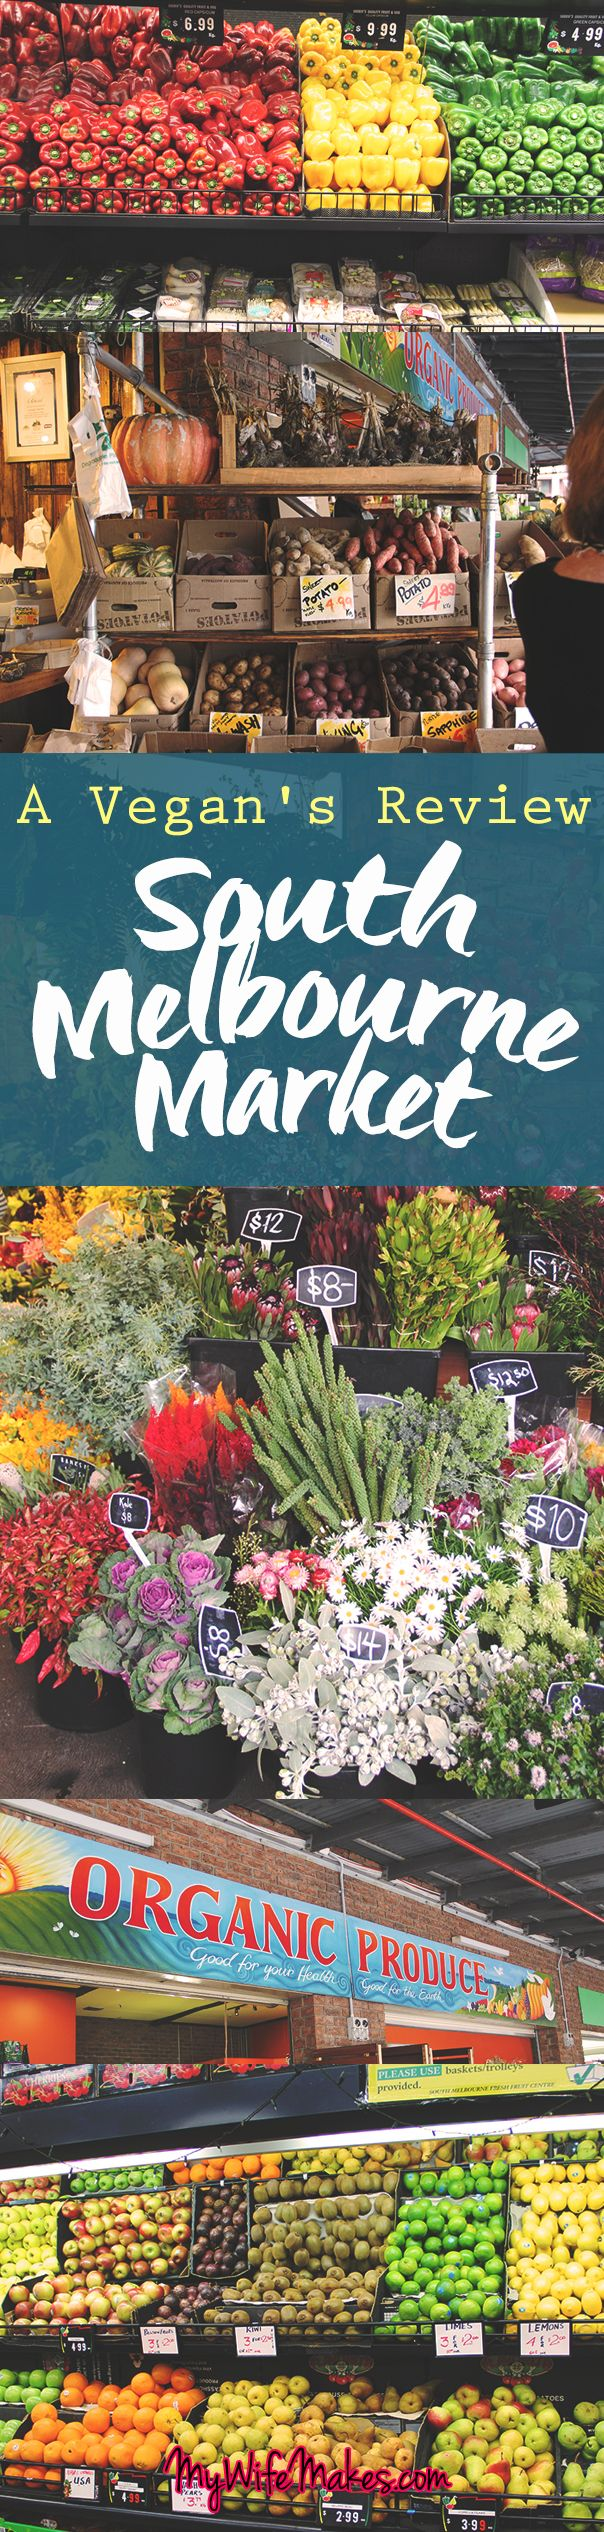 A review of South Melbourne Market as a vegan's paradise.